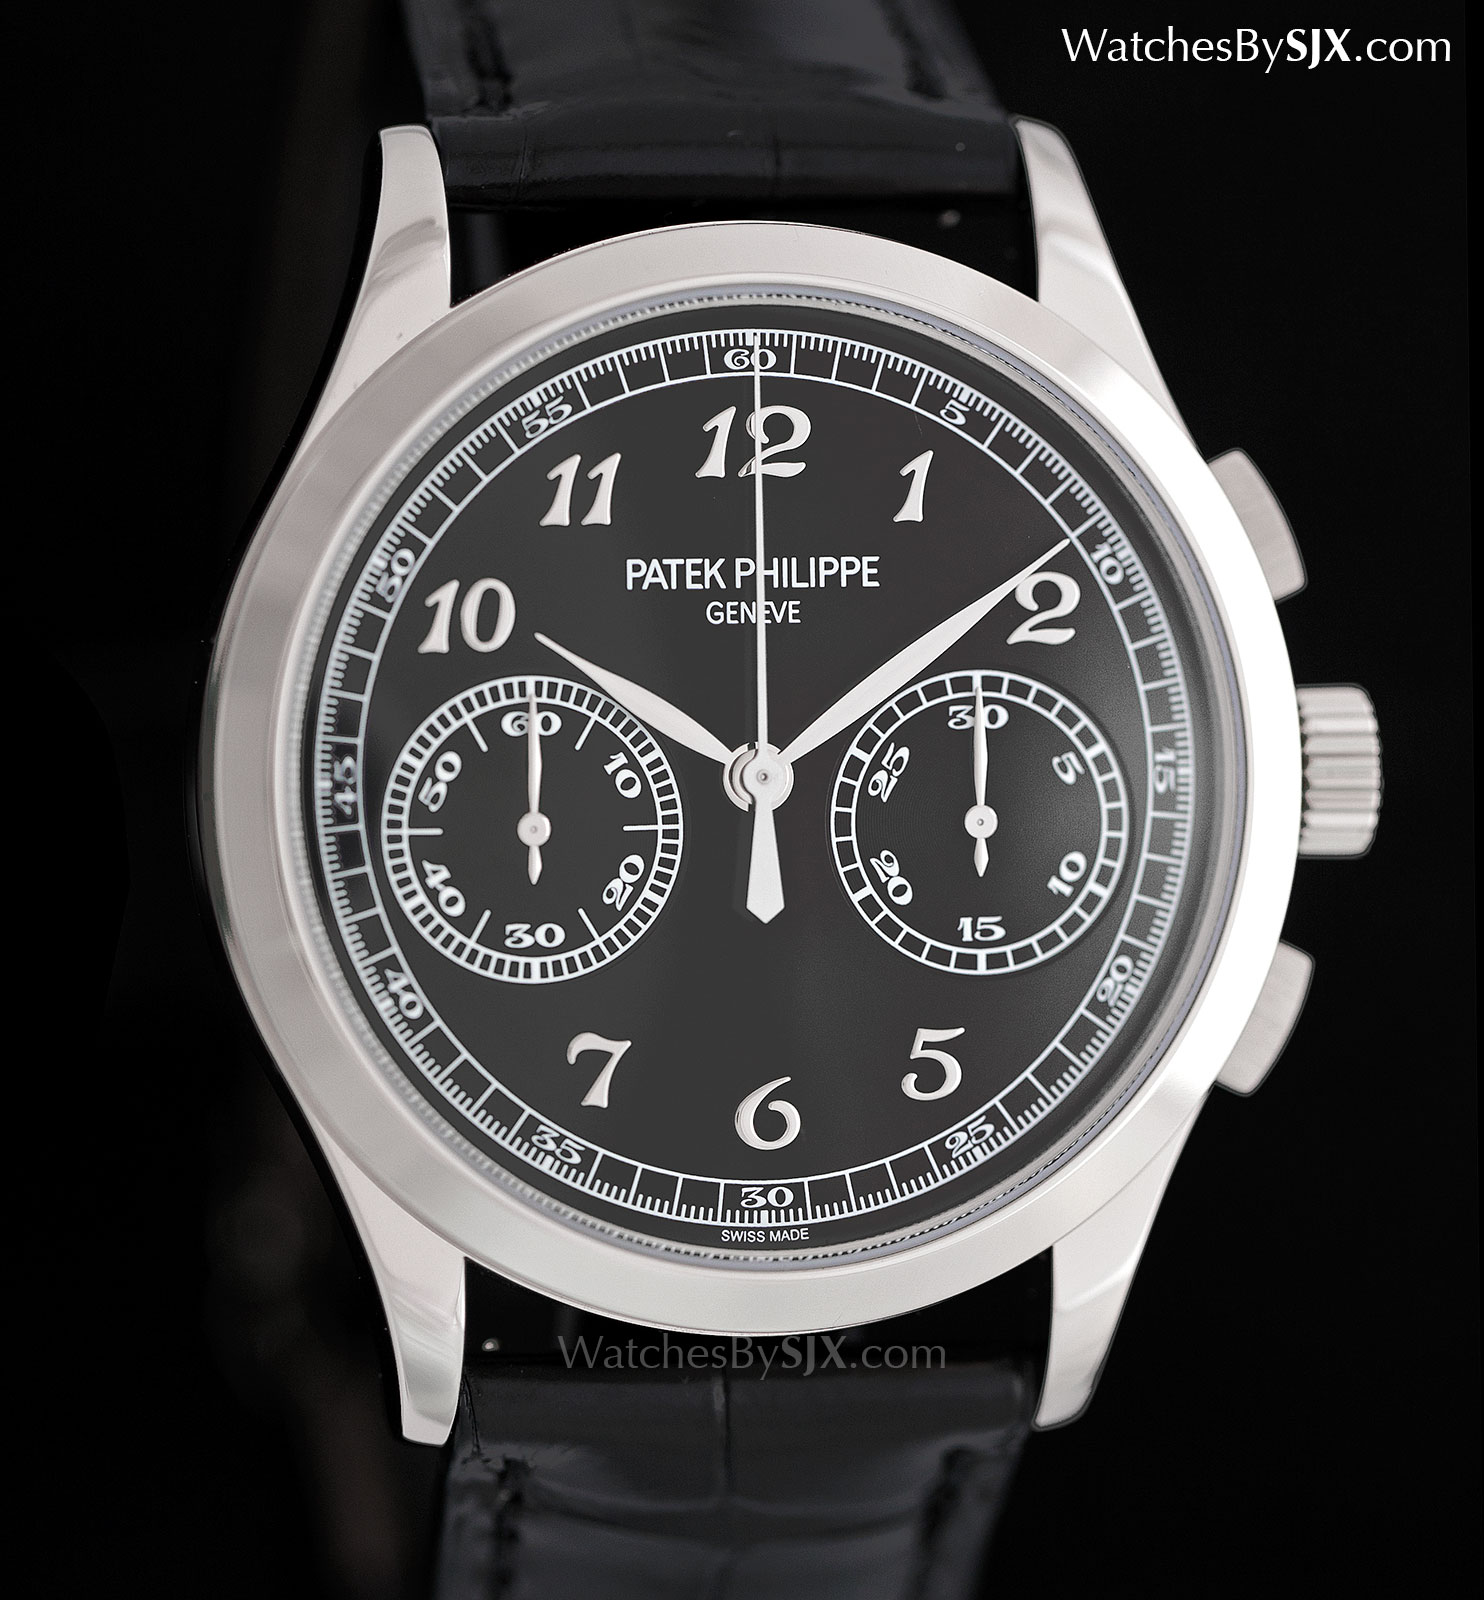 Up Close With The Patek Philippe 5170g Black Dial With Breguet